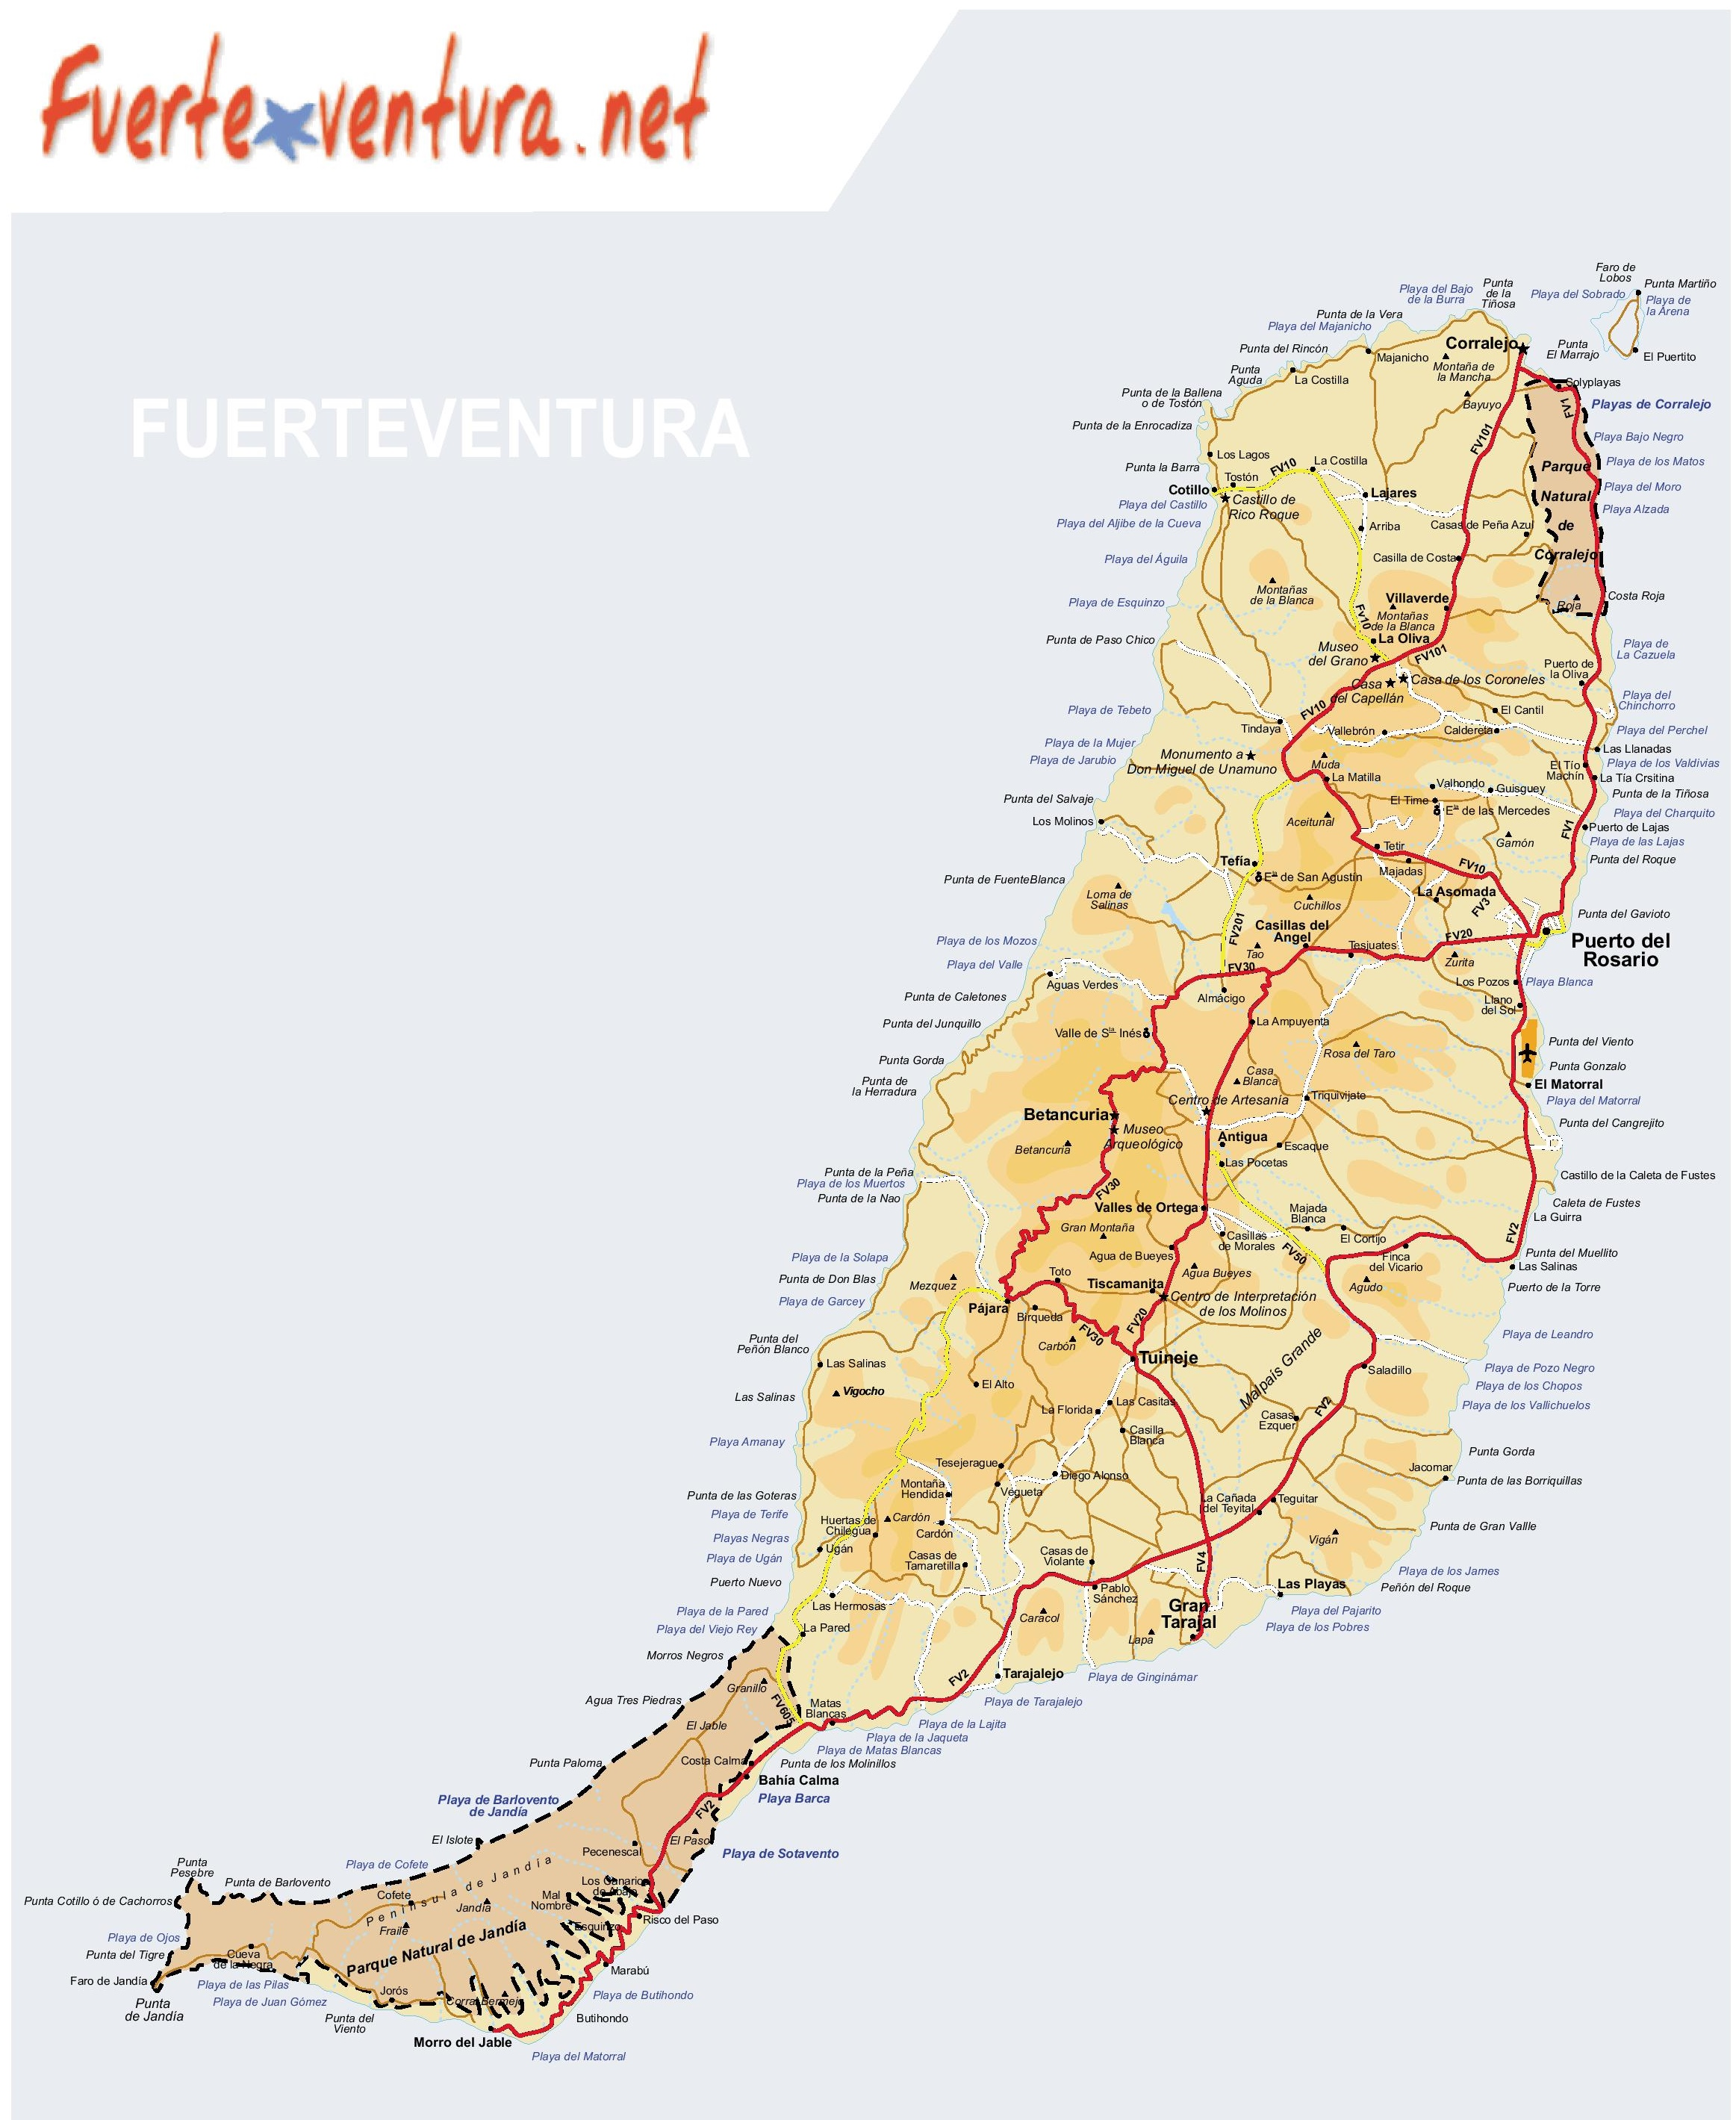 Fuerteventura Island Map Large detailed map of Fuerteventura with beaches